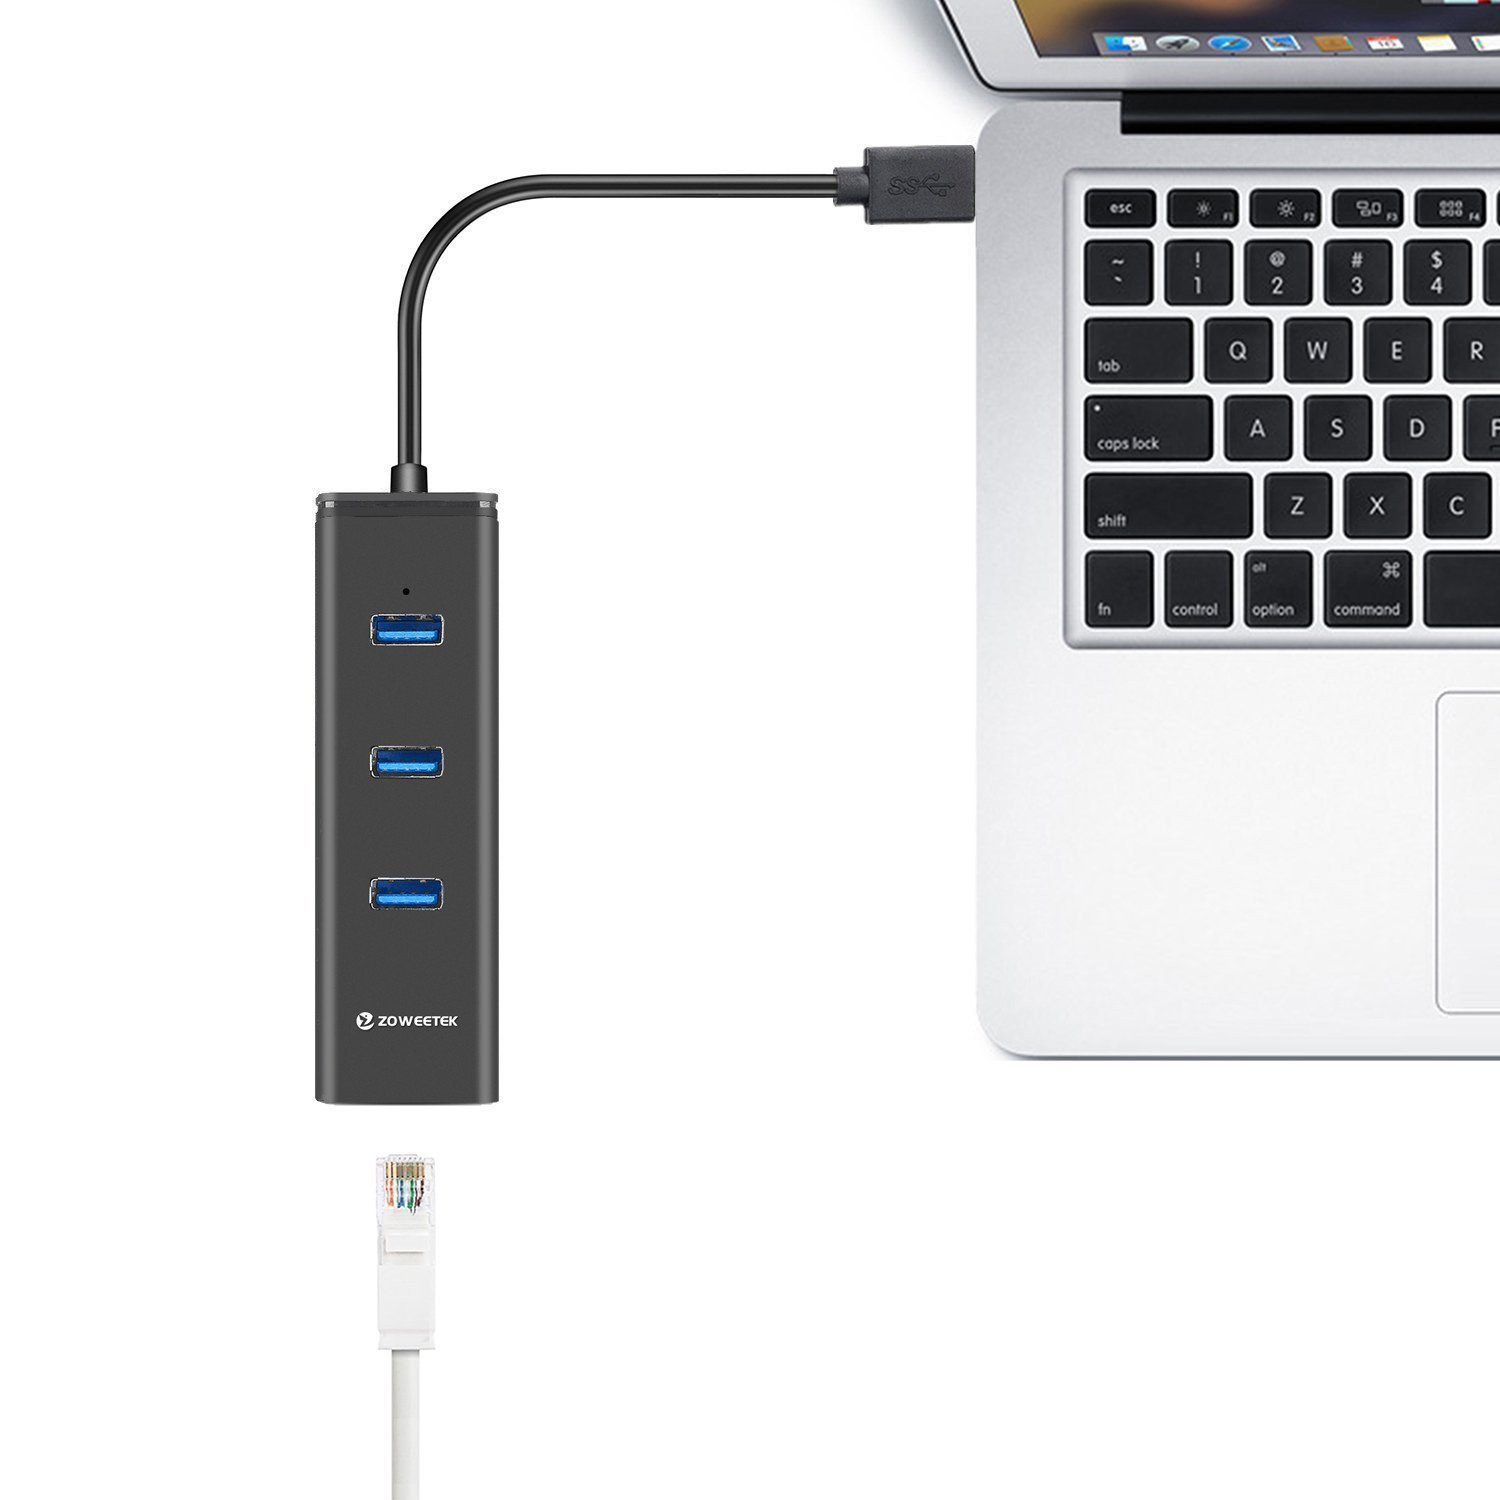 Zoweetek® USB 3.0 Hub 3 Ports + 1 Gigabit RJ45 Ethernet LAN Wired Network Adapter for Mac OS, Windows and Linux | No drivers | Aluminum